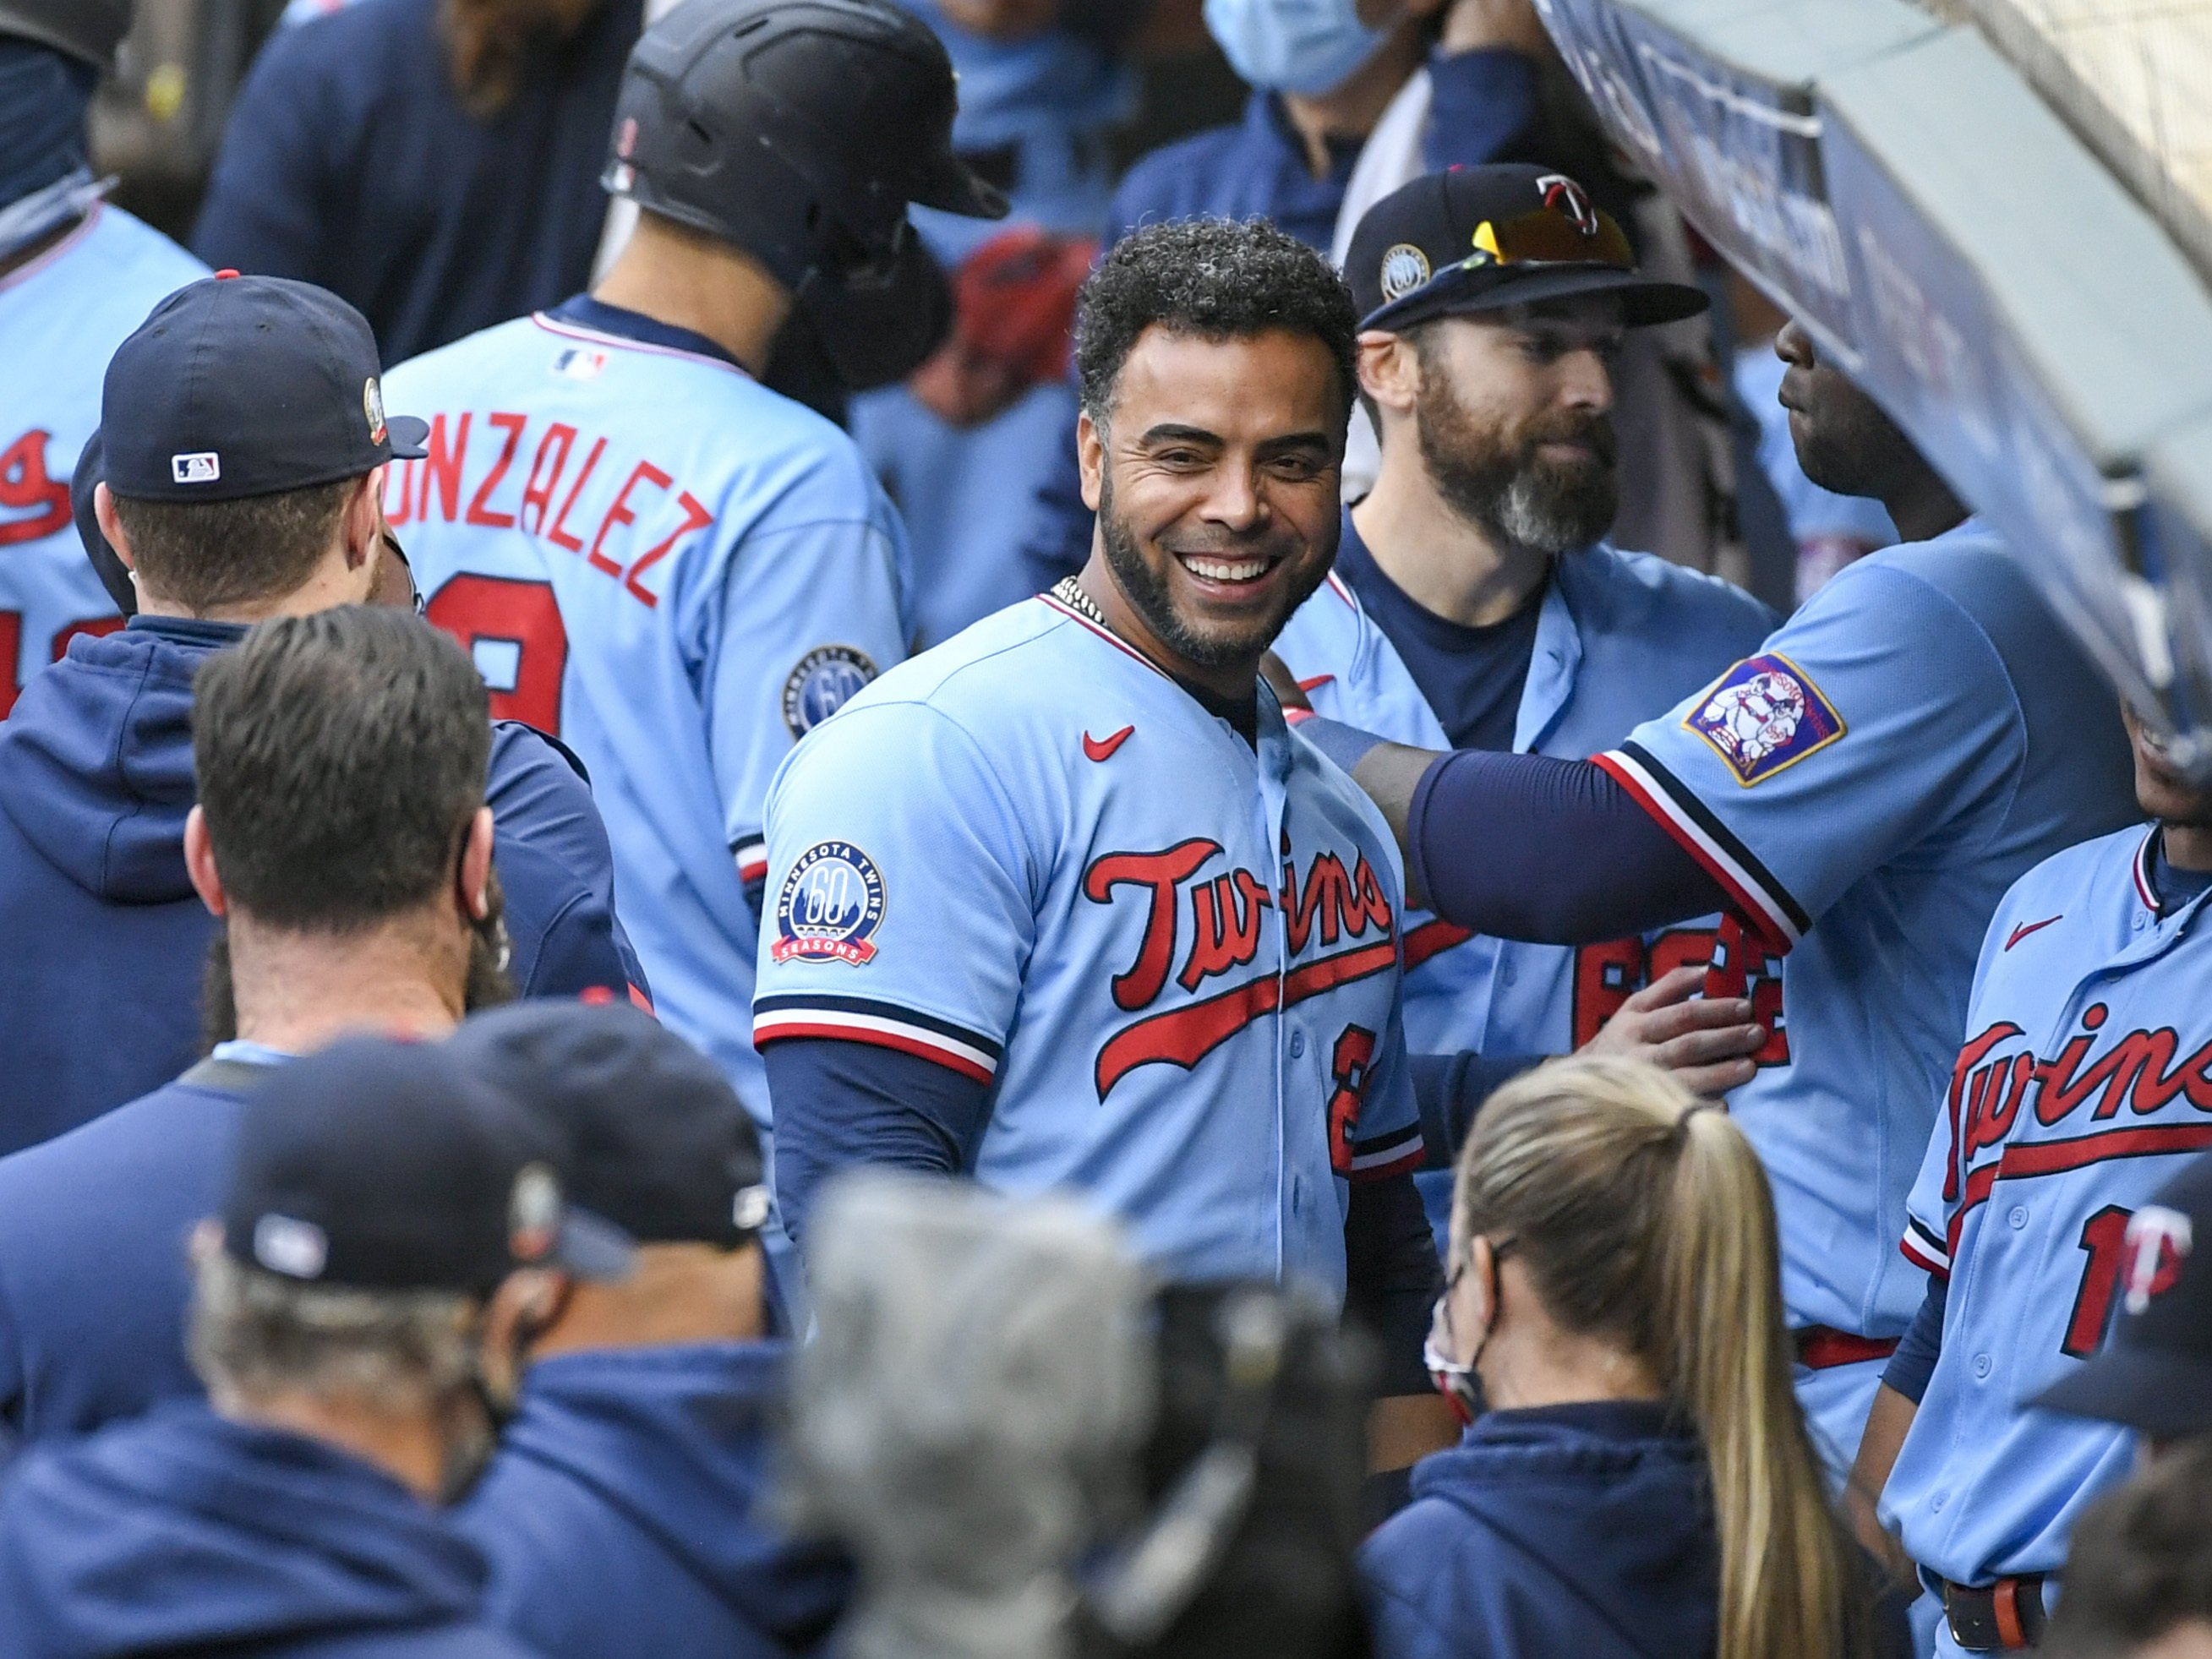 AP sources: Twins bring back DH Cruz, add Colome to bullpen